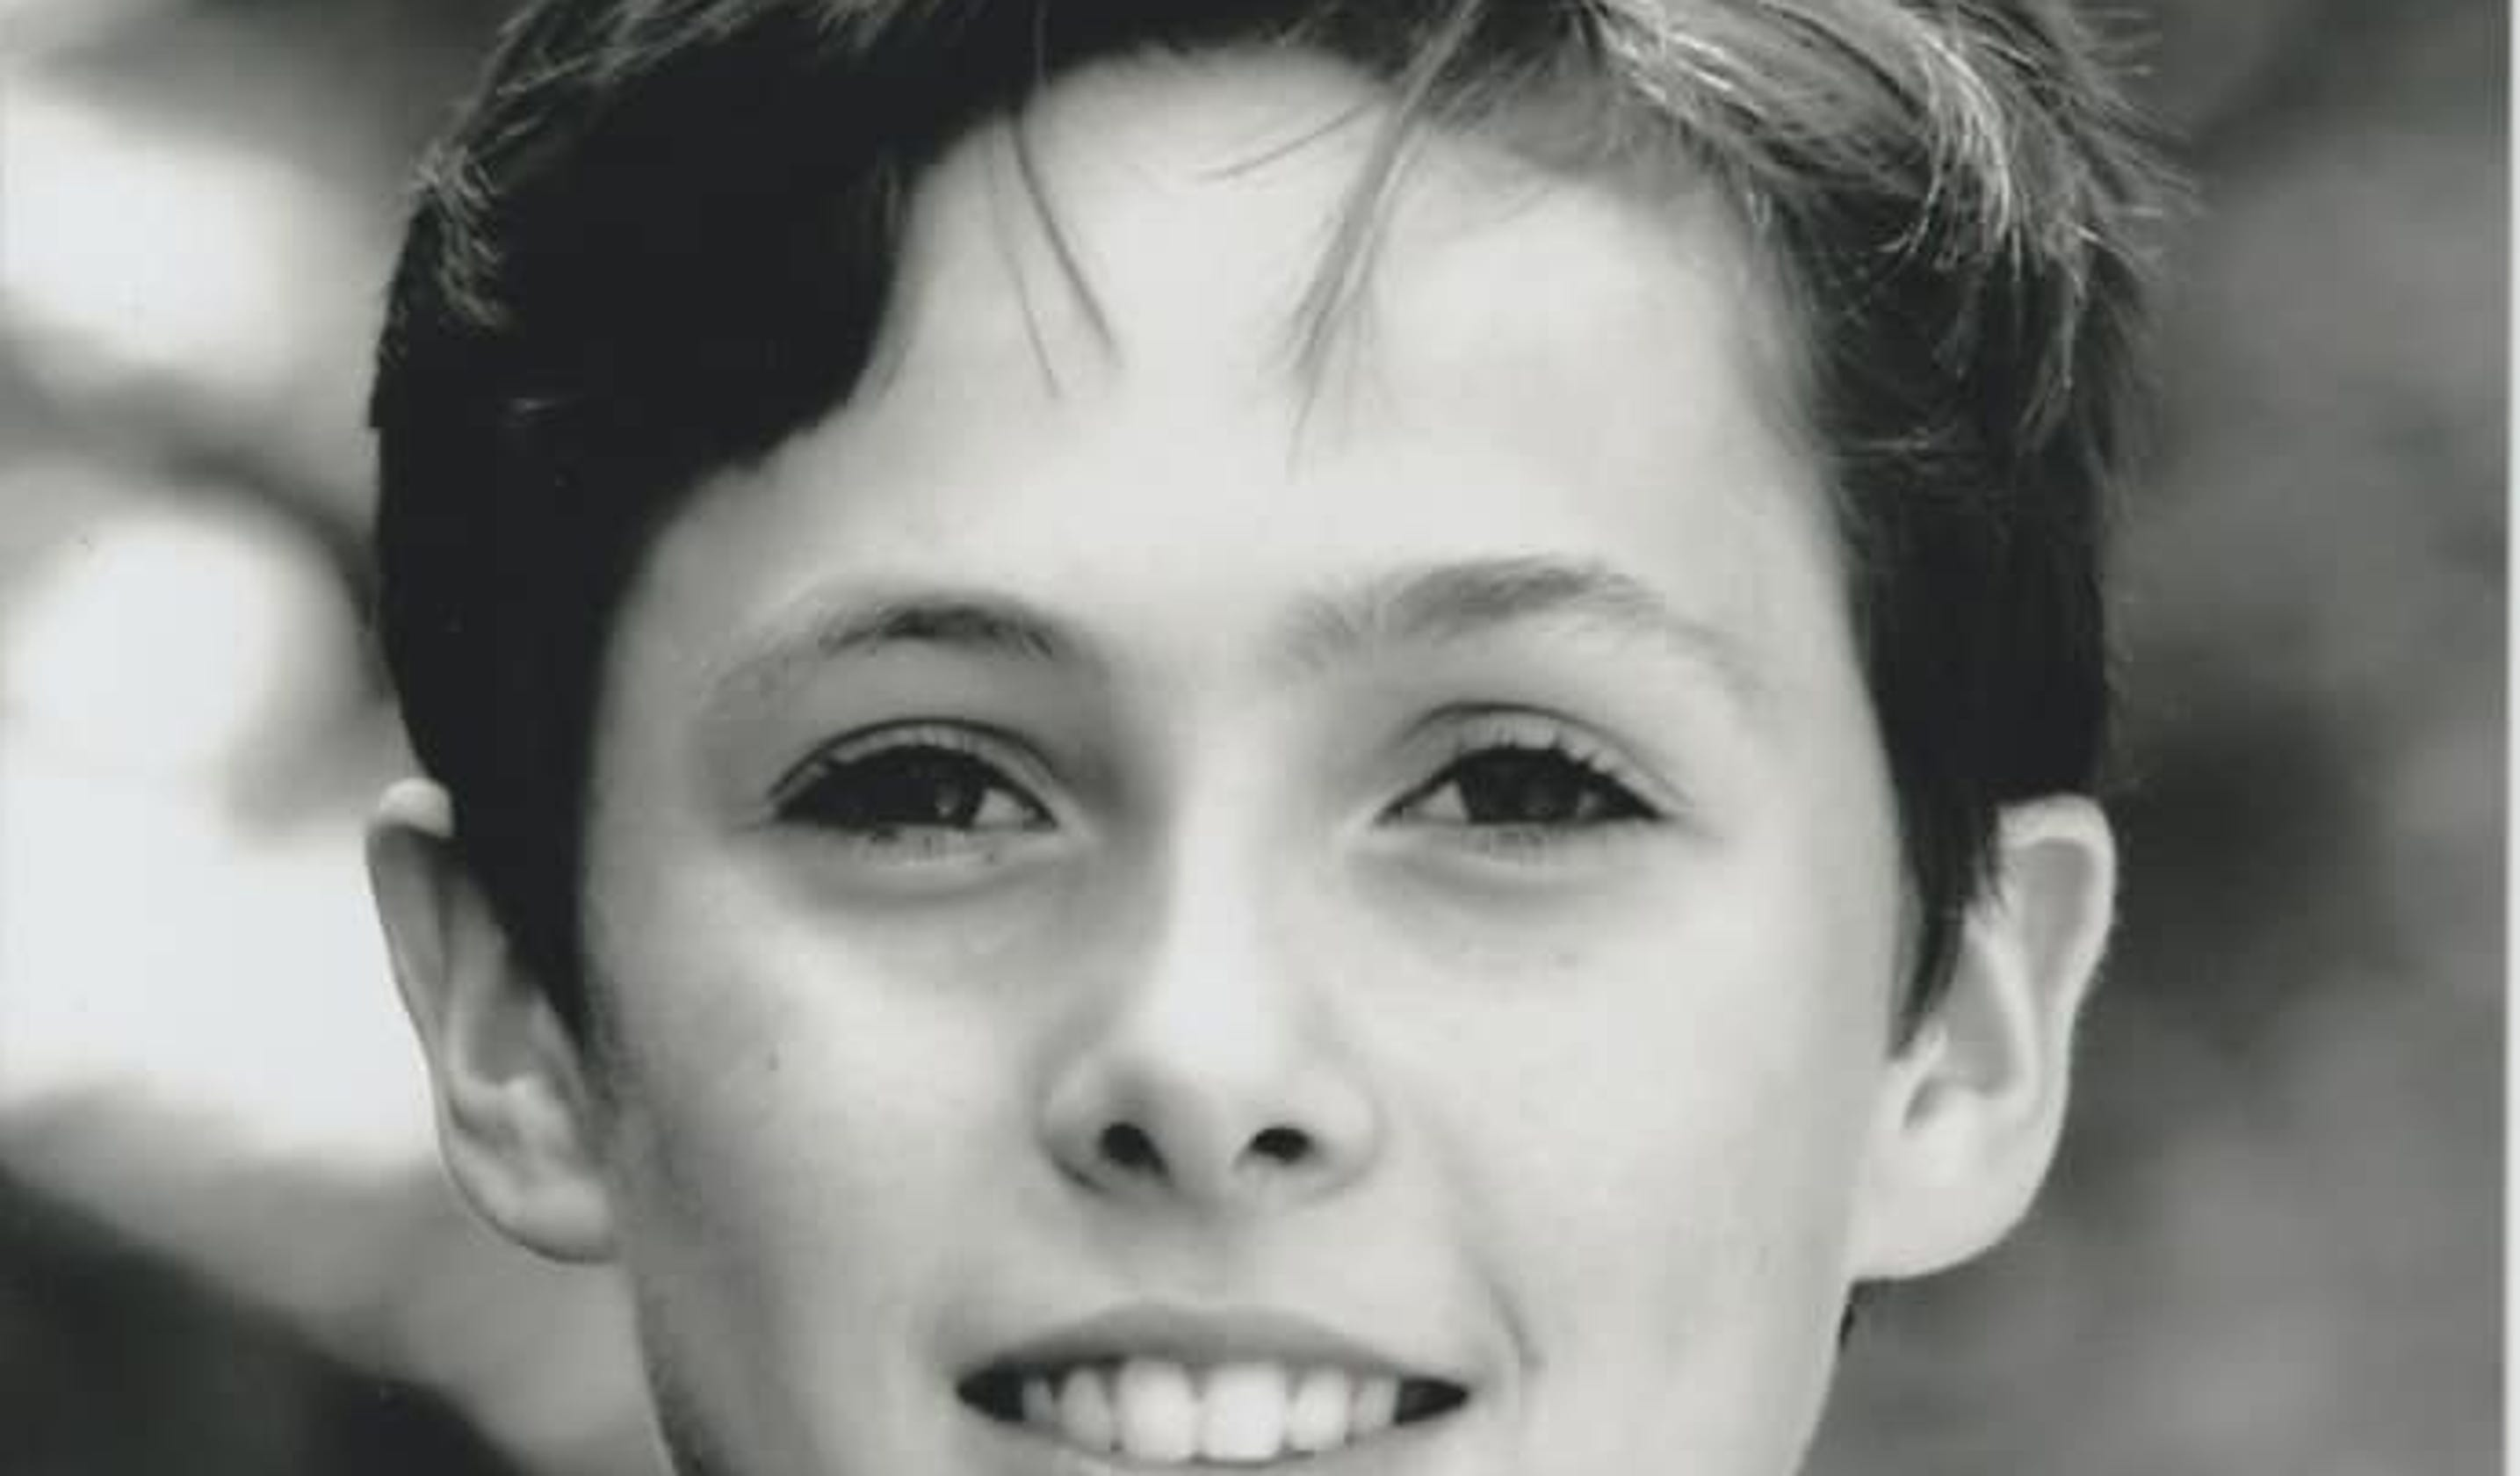 Runaways Findings Of Neglect And Abuse >> Mountain Lakes Nj Runaway Thomas Kolding One Of 1 3m In America